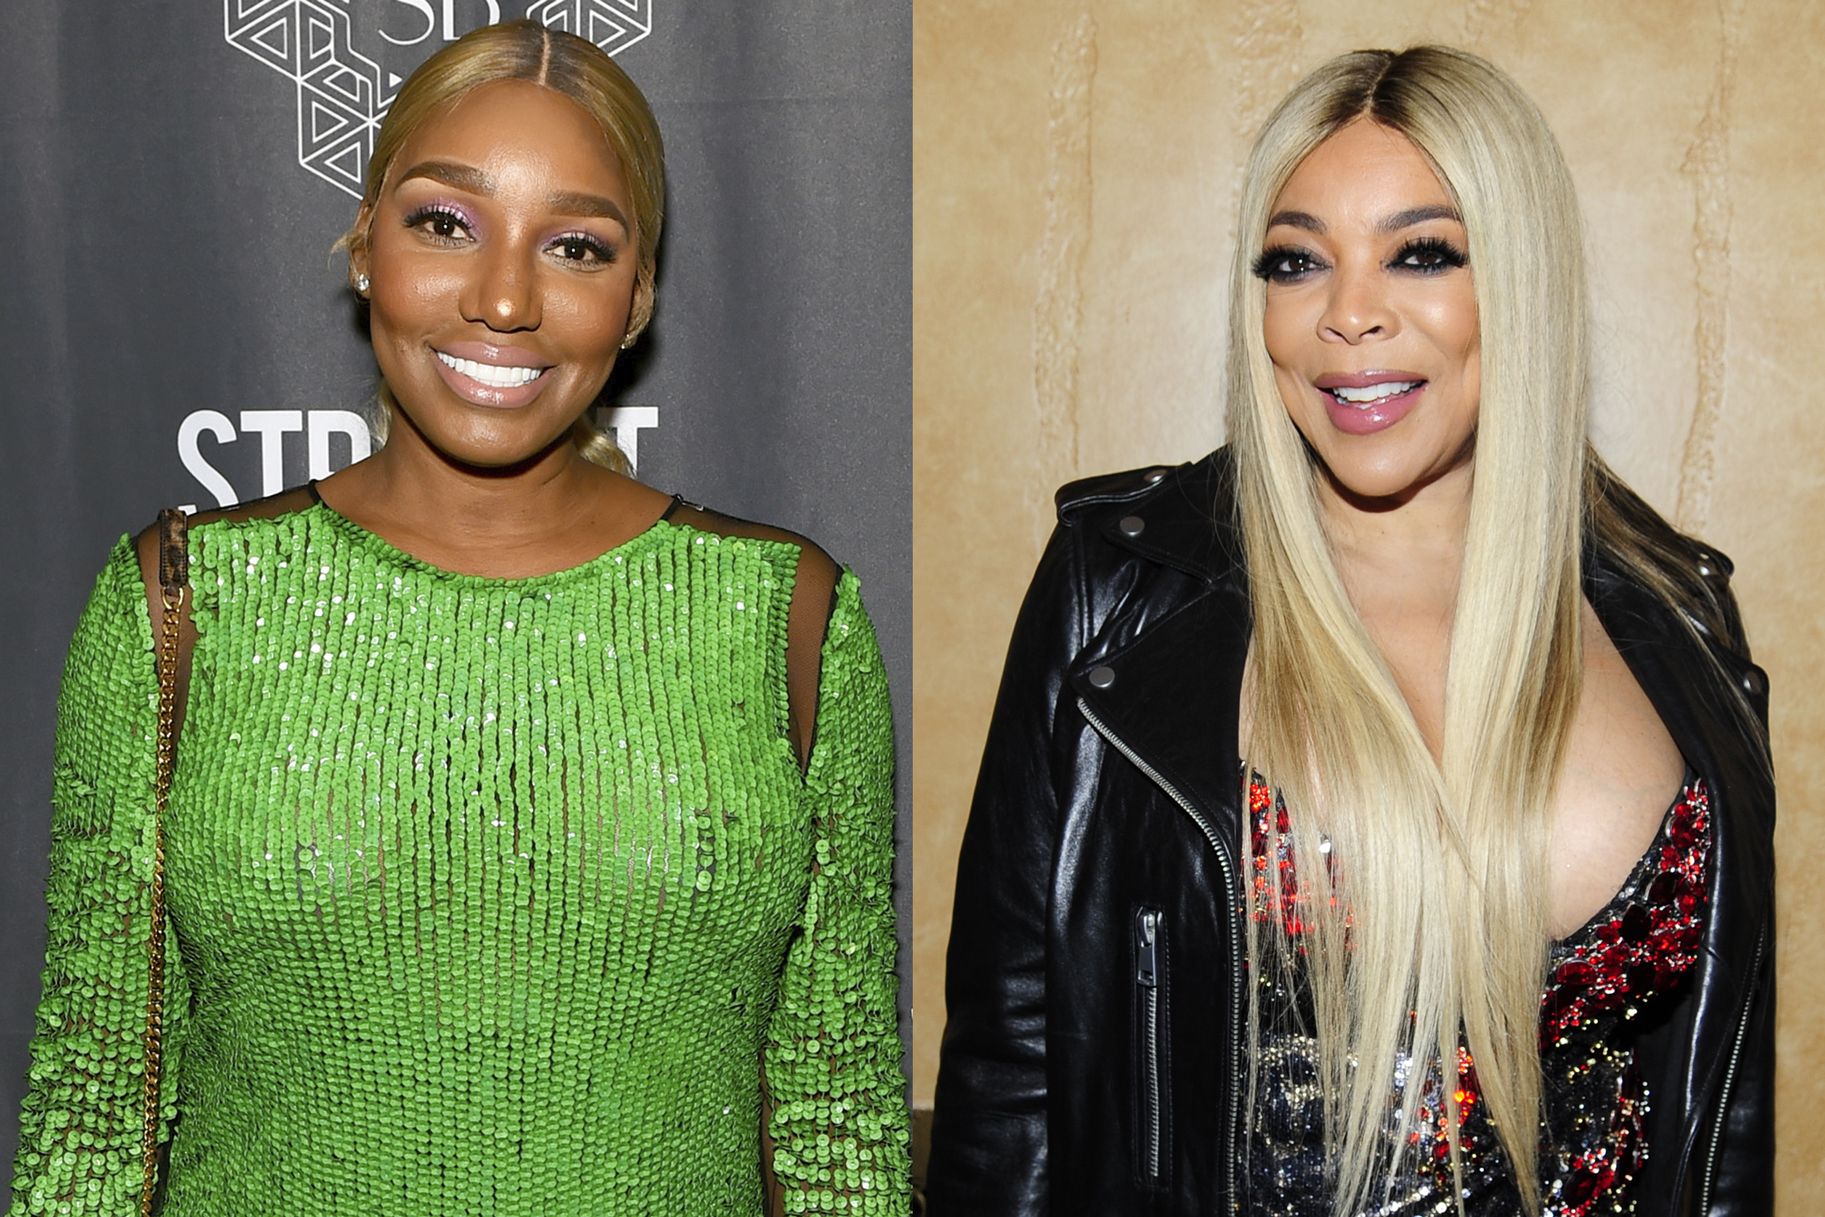 Wendy Williams Spends Some Quality Time With NeNe Leakes - People Slam The Ladies For Too Much Photo Editing